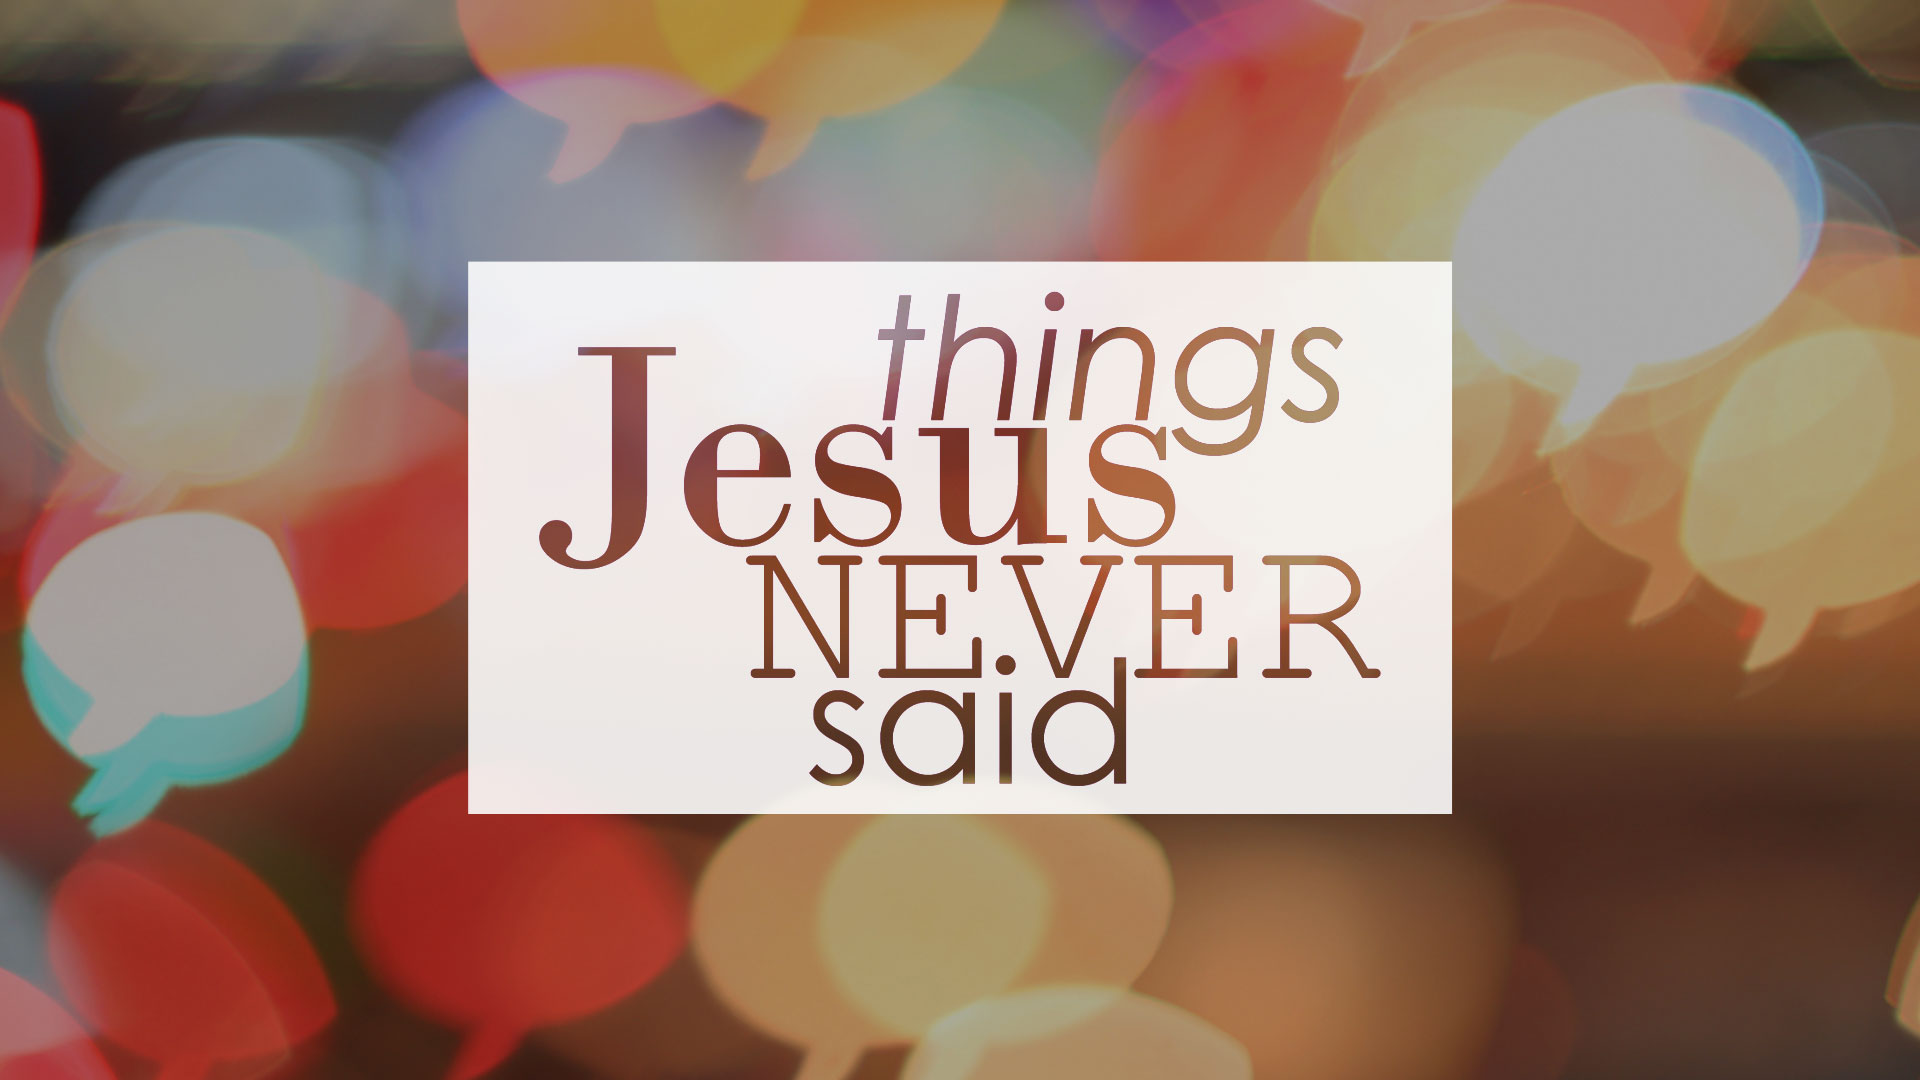 Thing Jesus Never Said – Just let your conscience be your